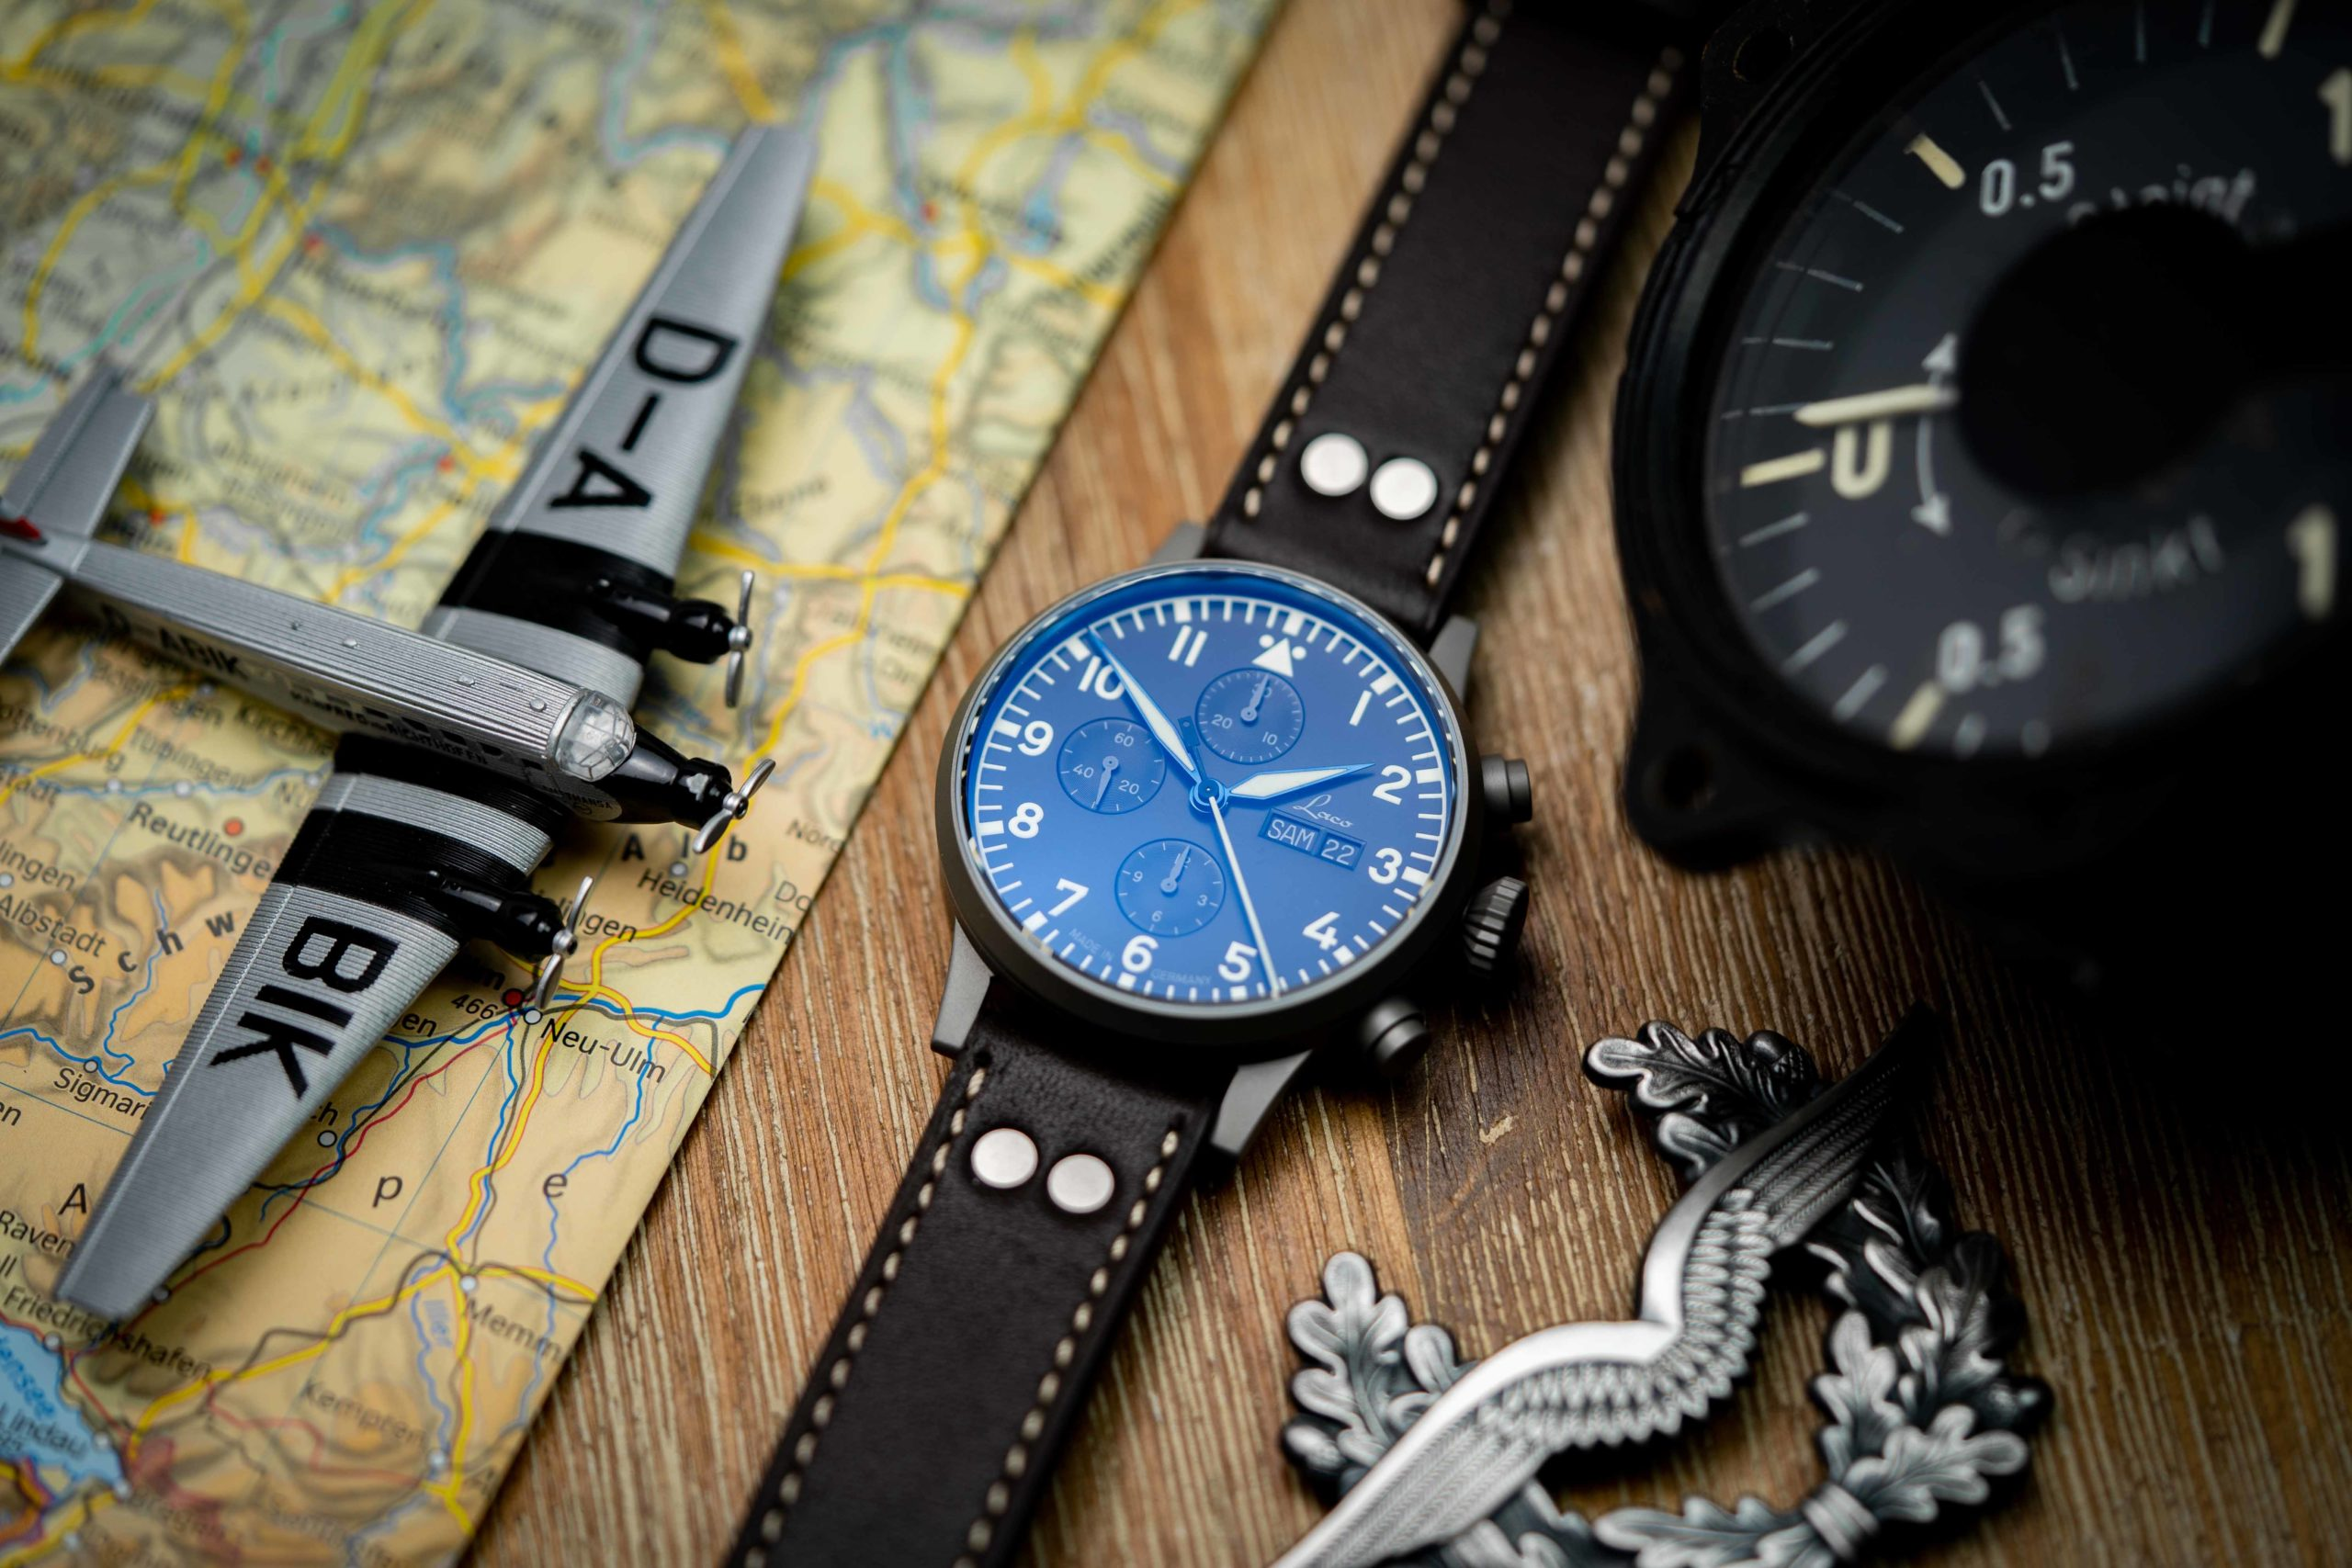 Laco-Chronograph-Muenchen-Test